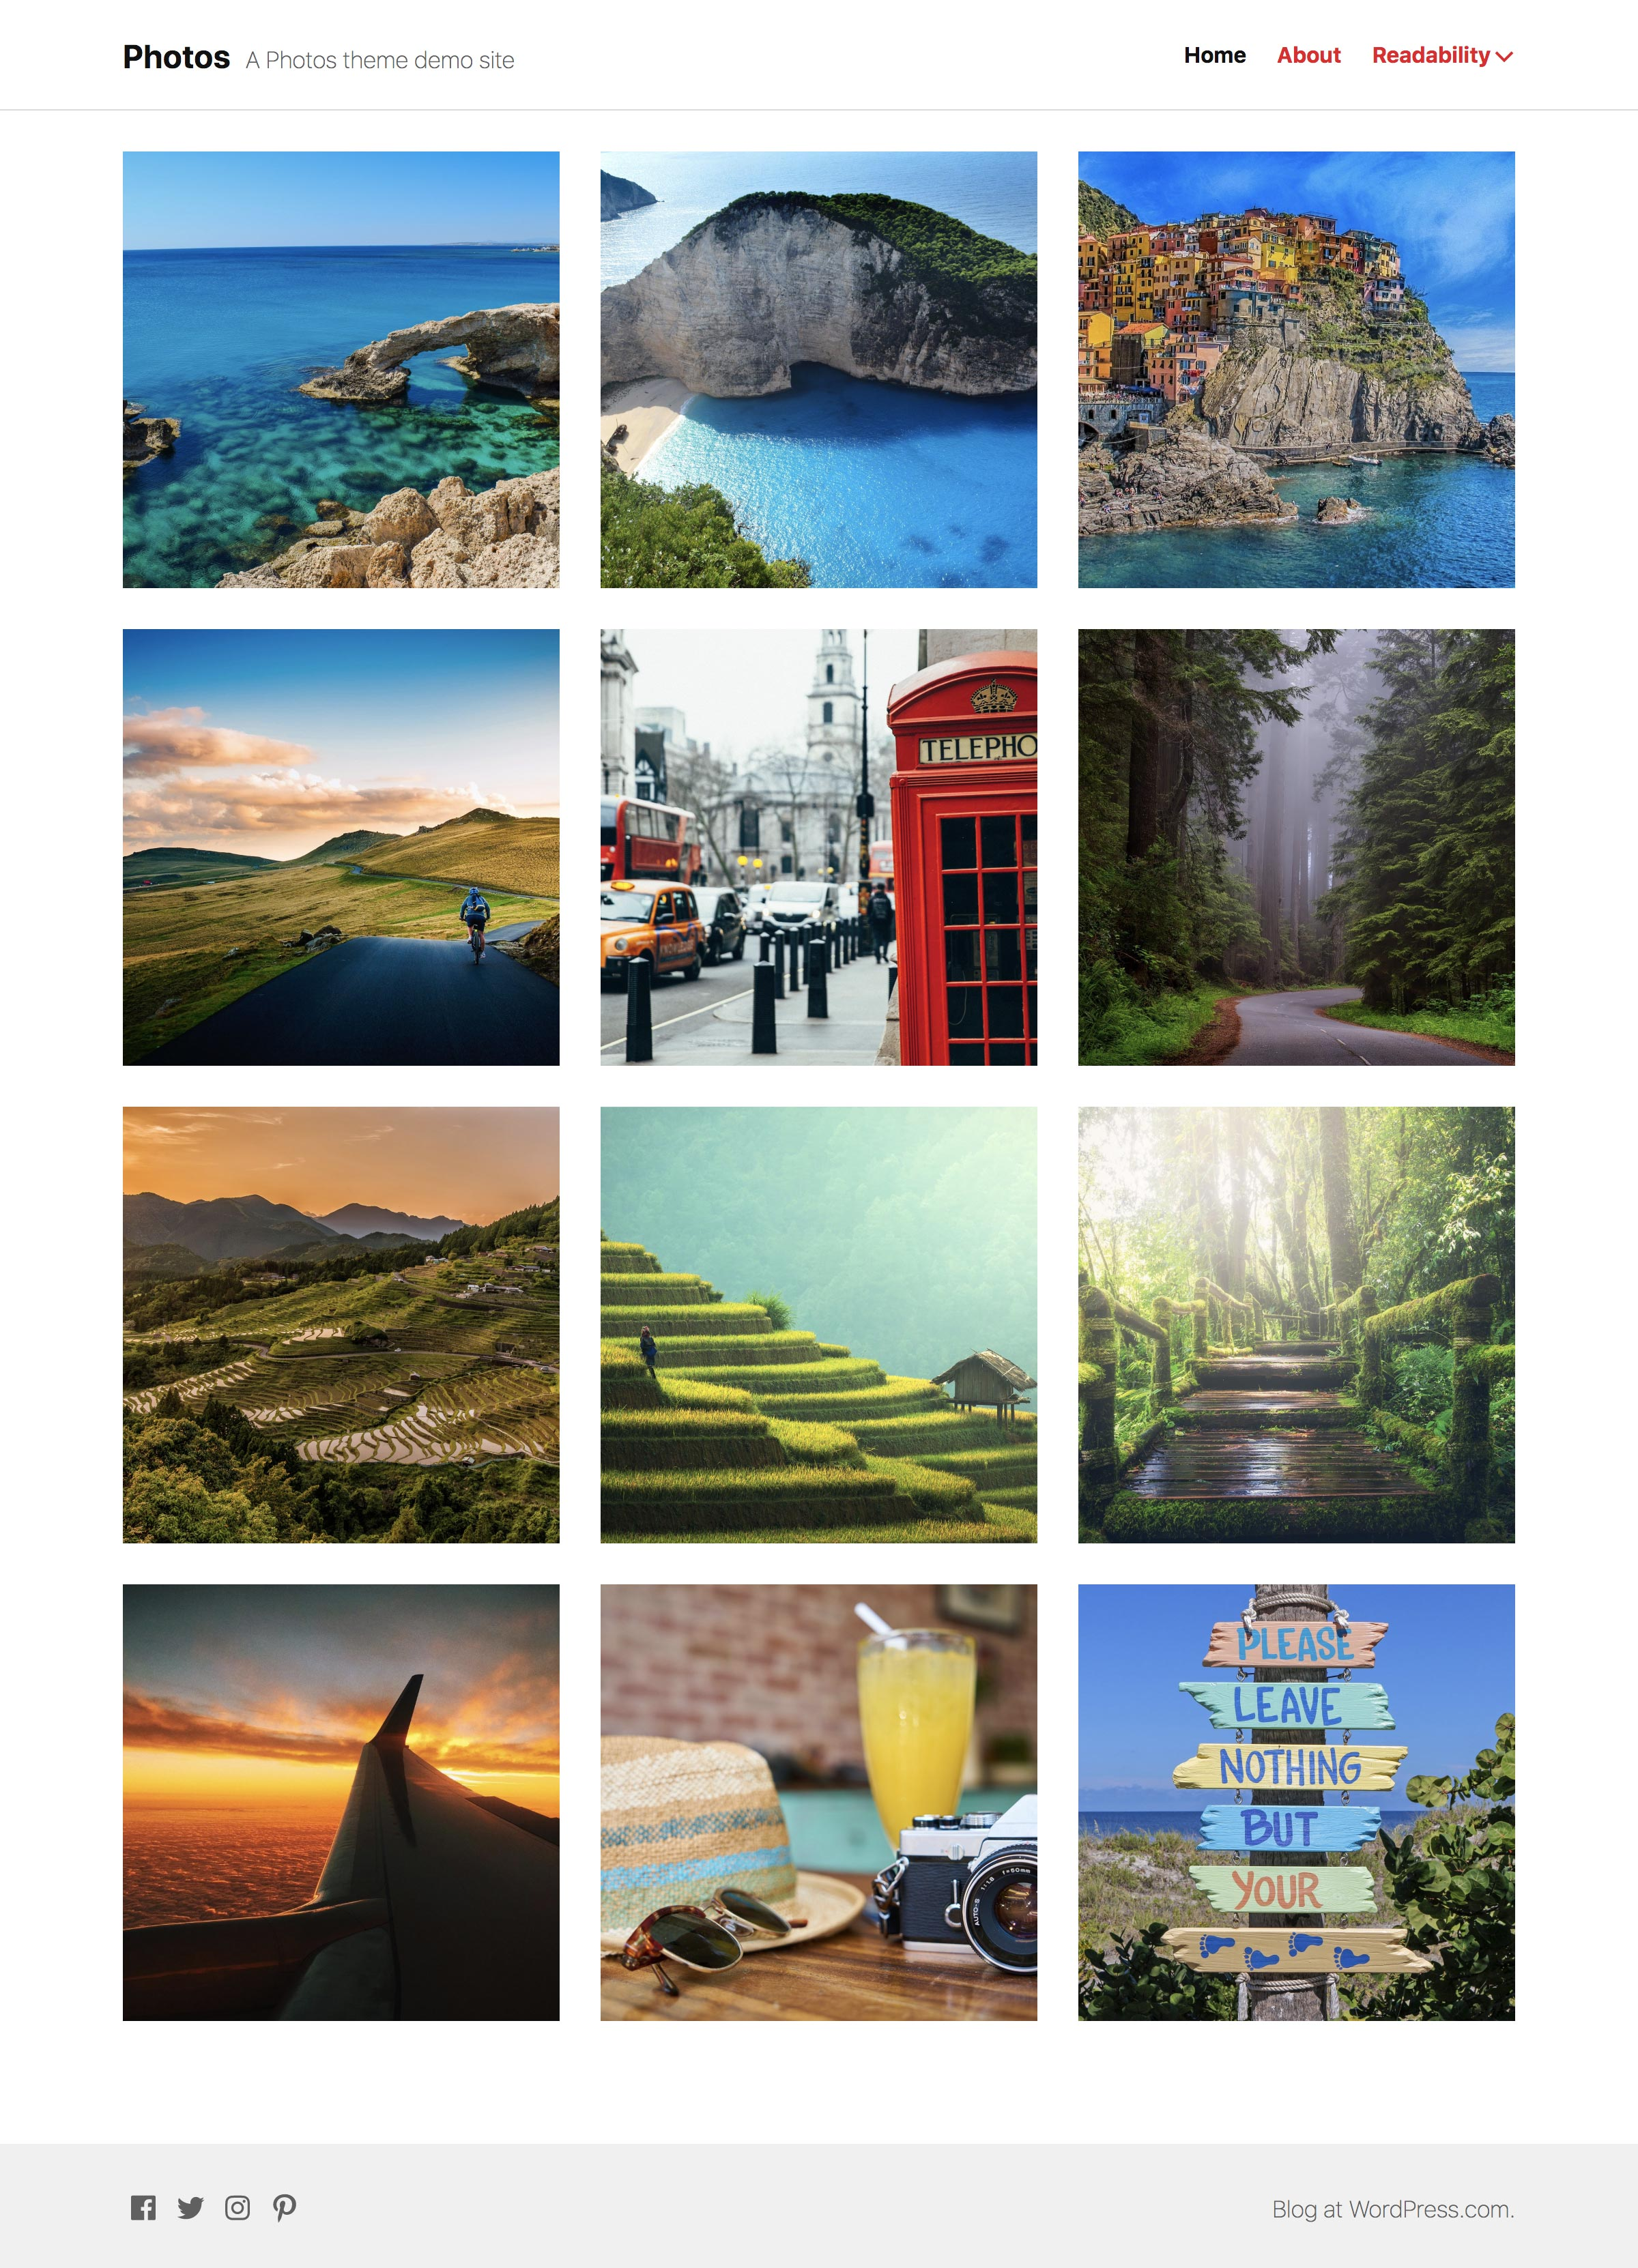 Screenshot of the Photos theme